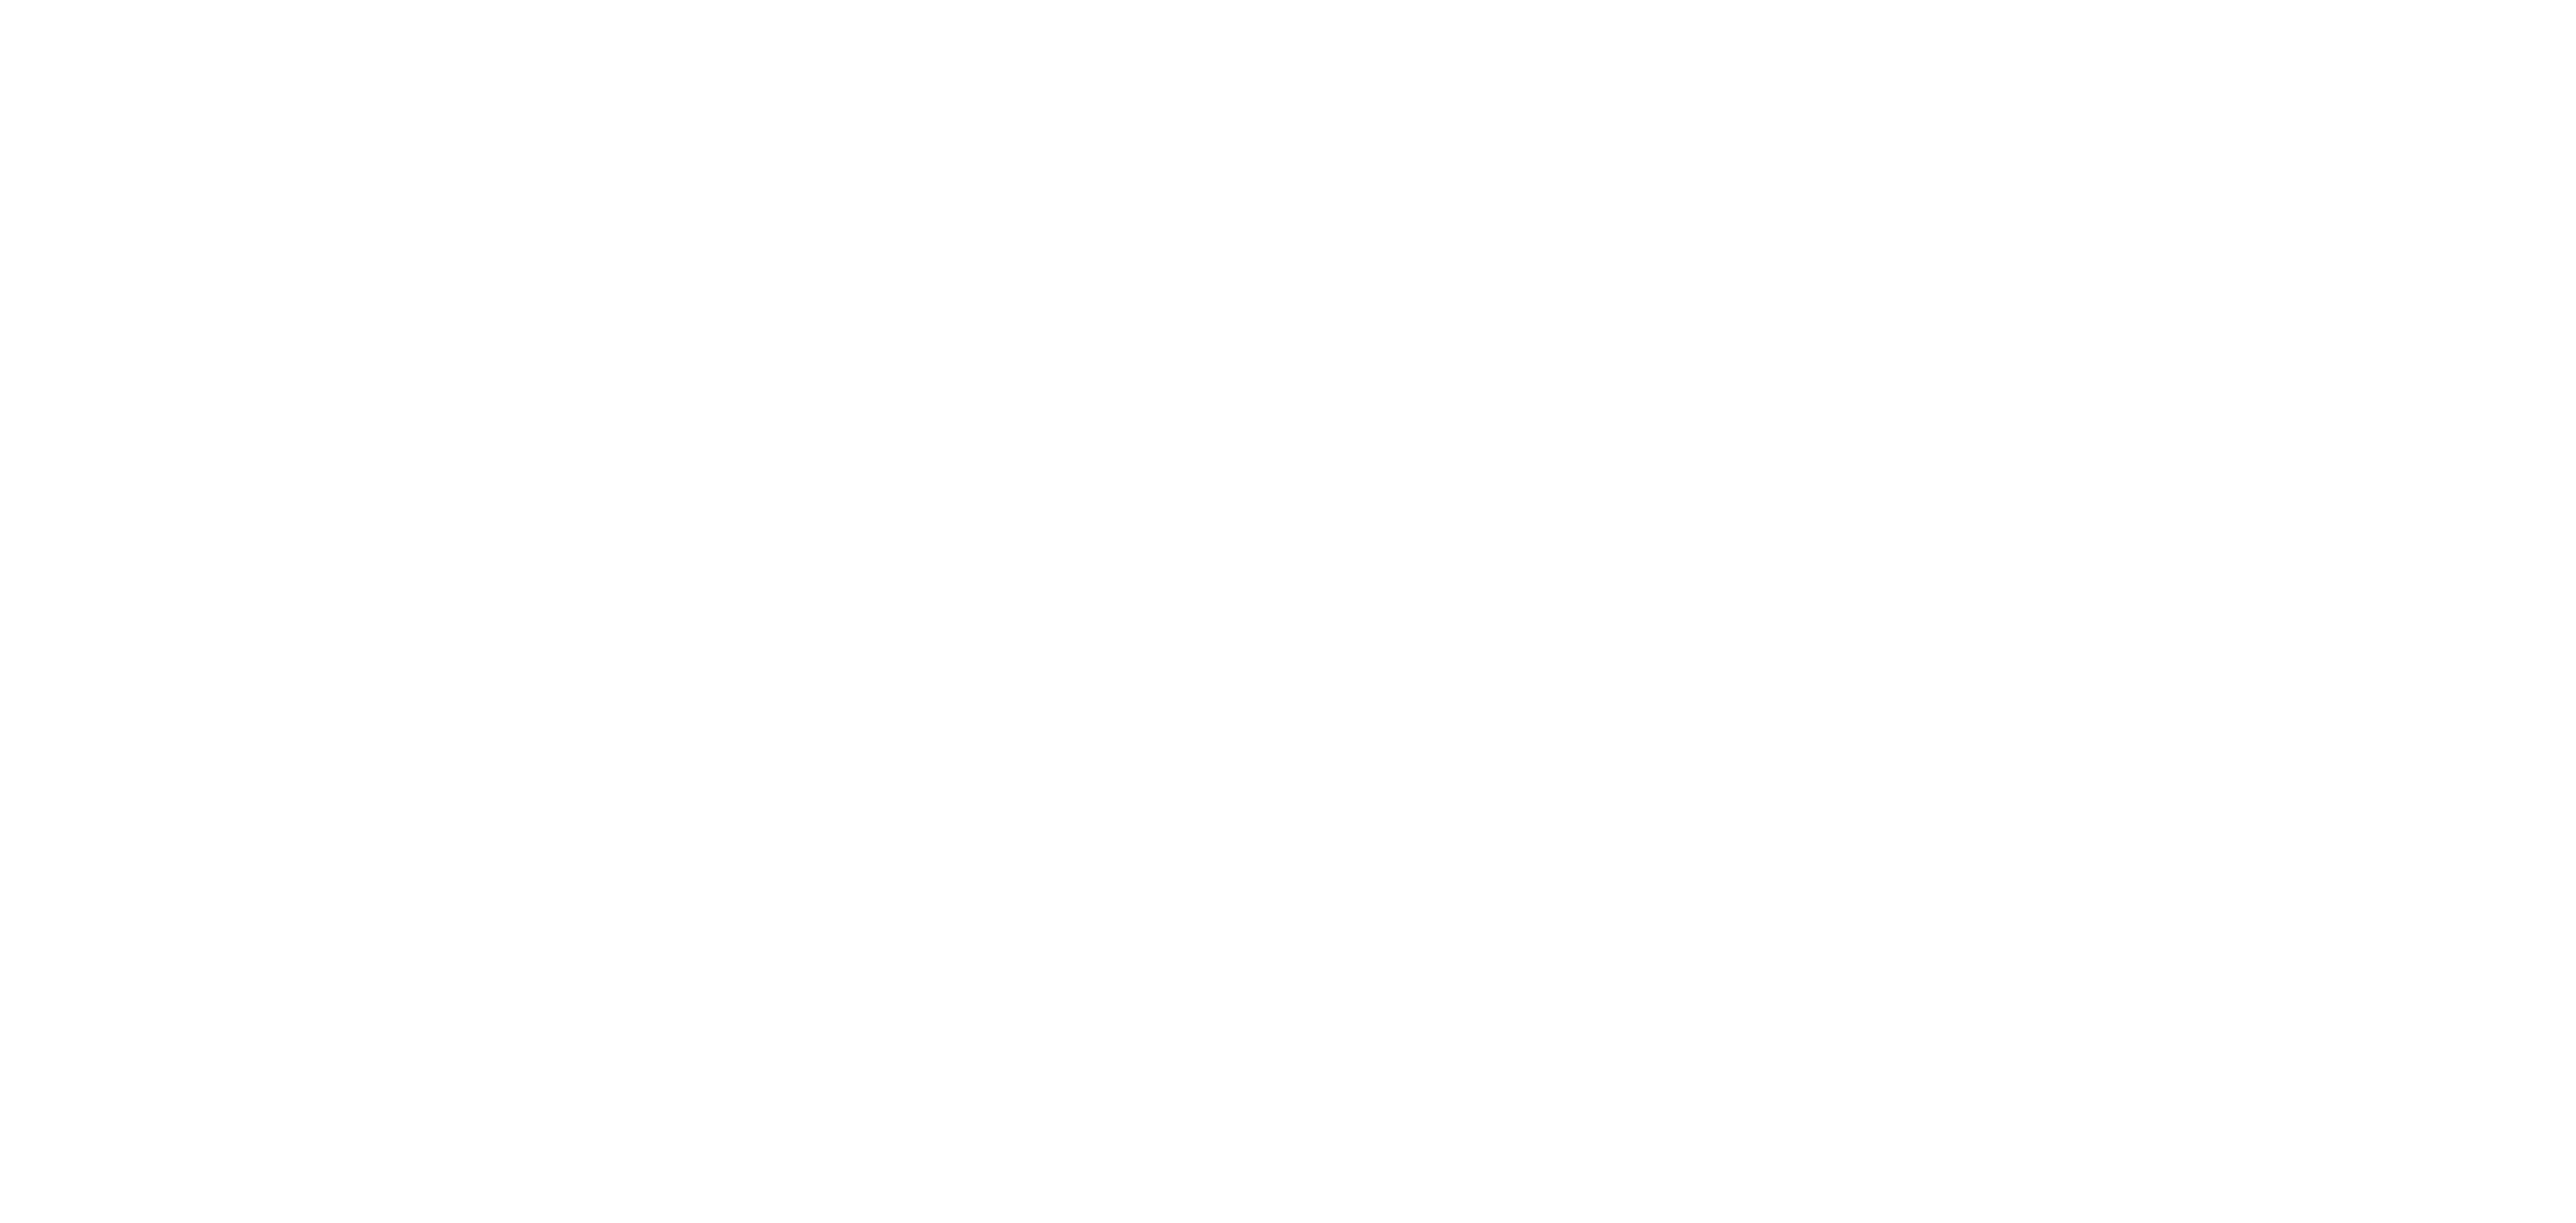 The Kitchen Community Chicago Built By Real Food